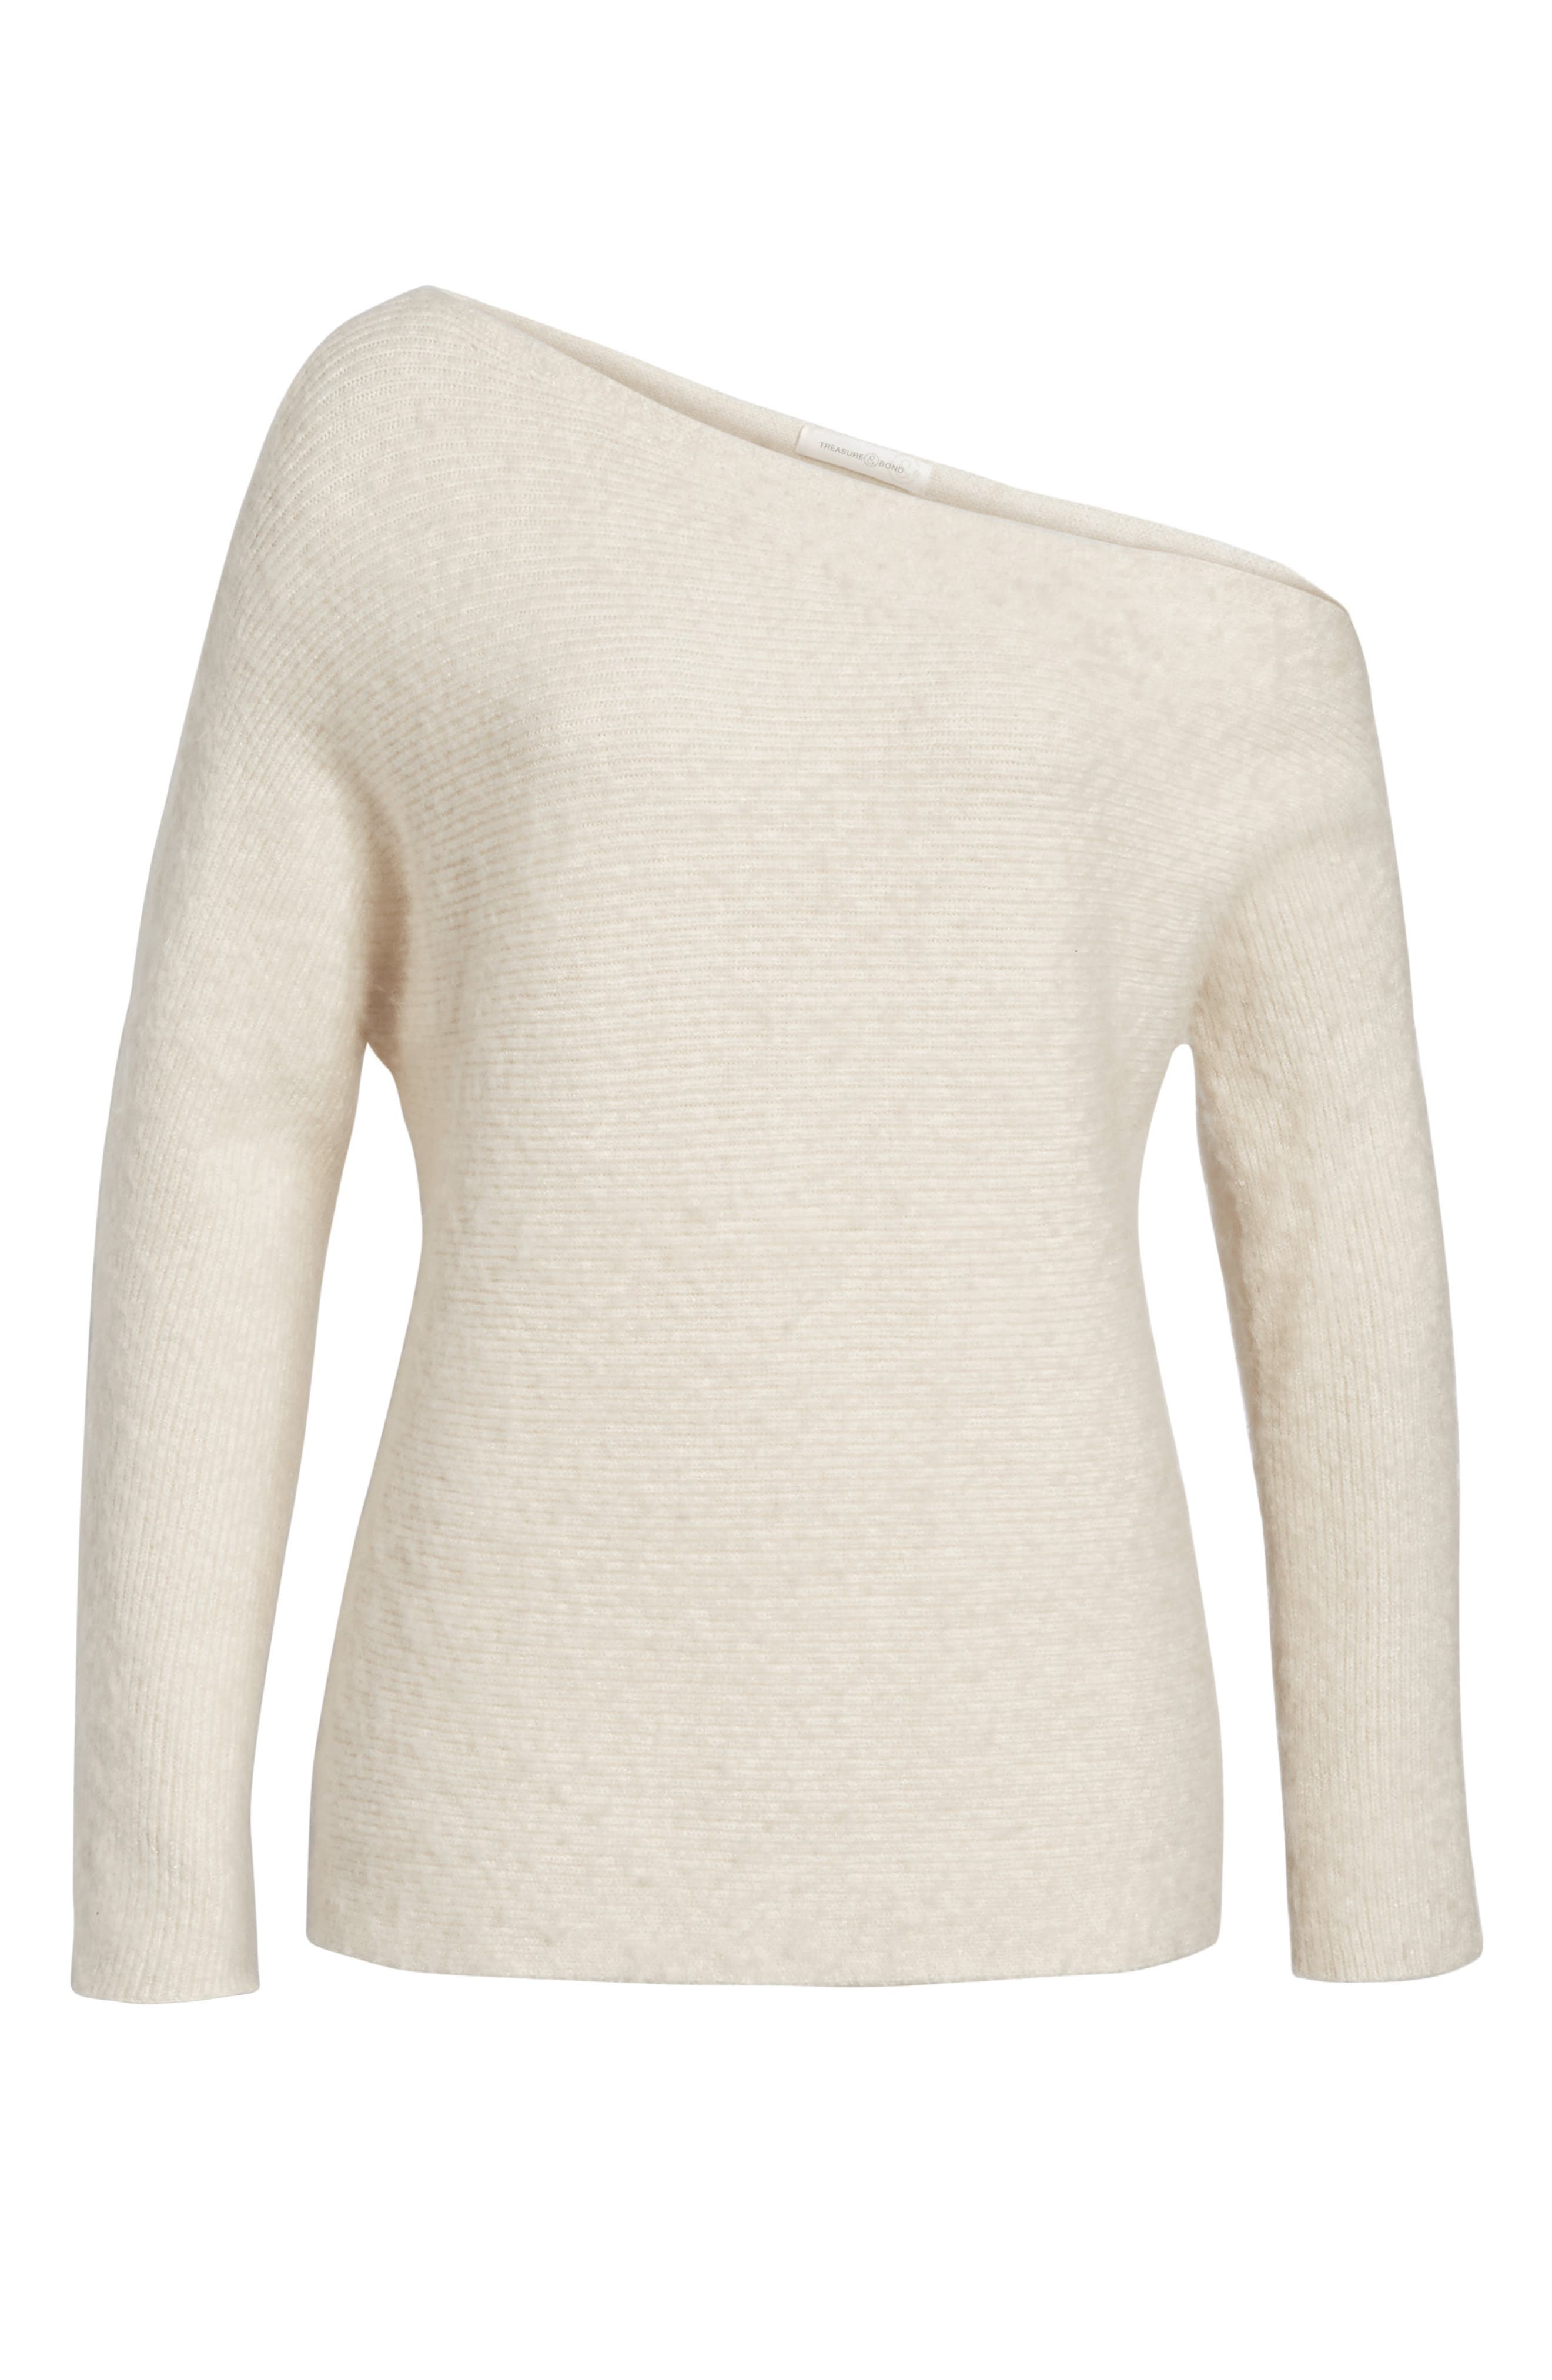 TREASURE & BOND,                             One-Shoulder Ribbed Sweater,                             Alternate thumbnail 6, color,                             BEIGE OATMEAL LIGHT HEATHER